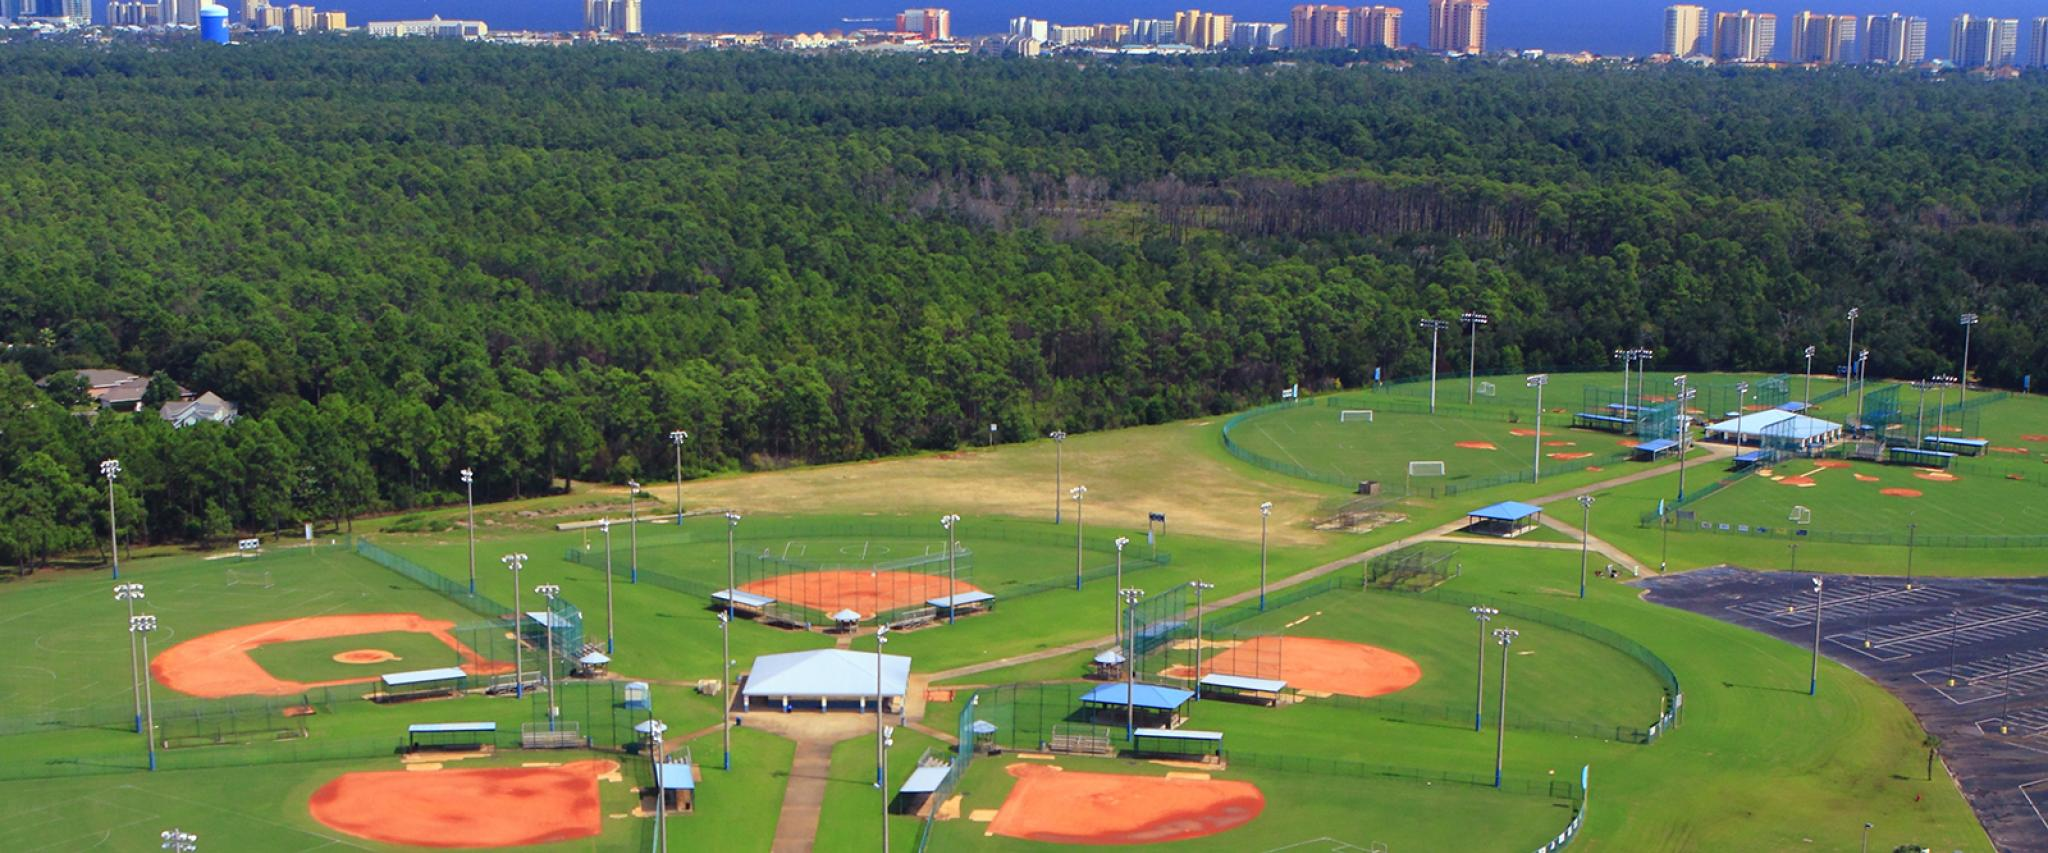 Orange Beach Baseball Facilities on Alabama Gulf Coast